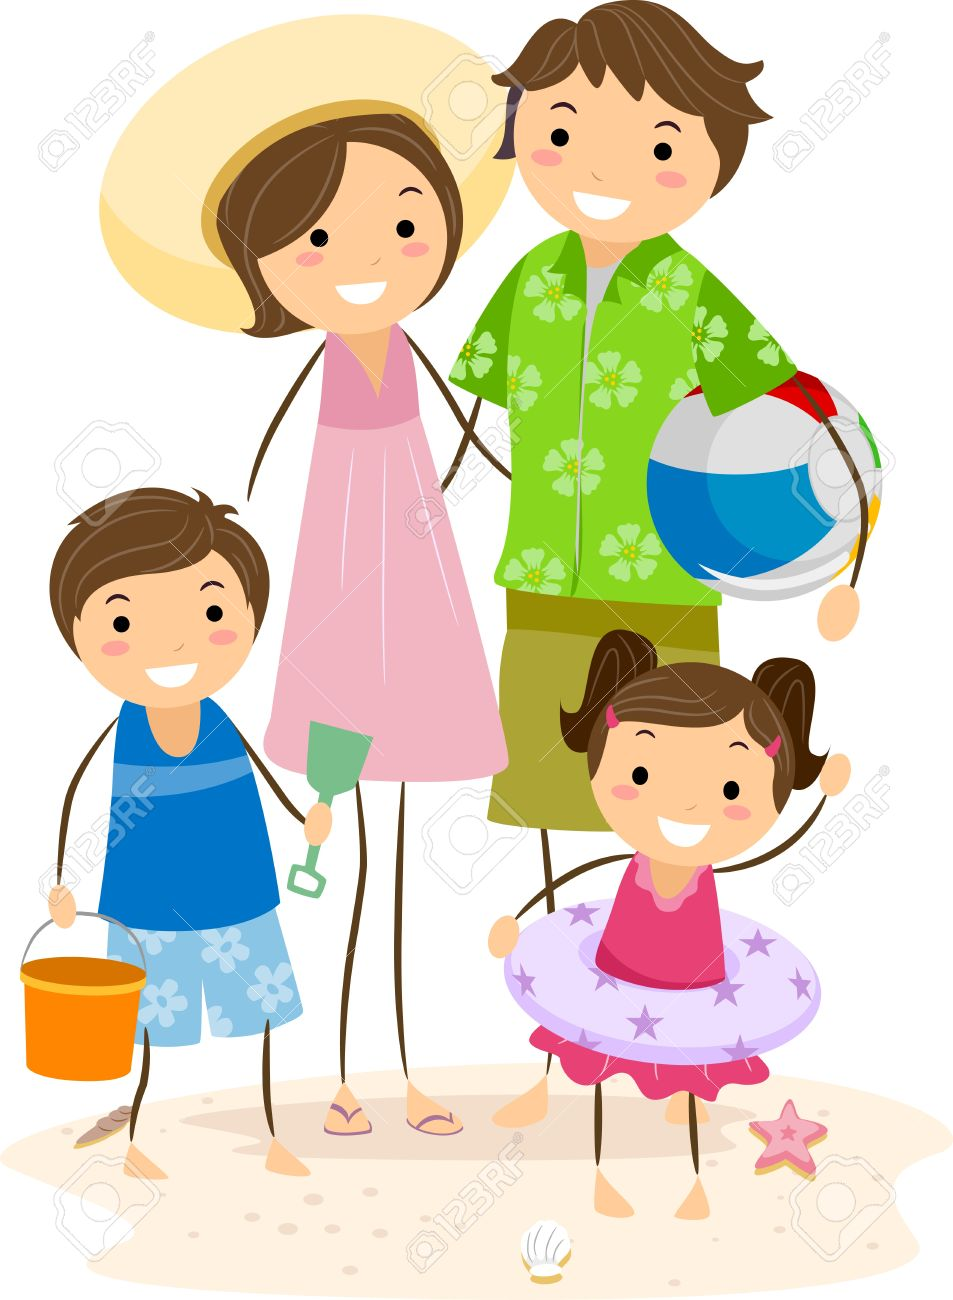 Illustration of a Family Outing at the Beach Stock Illustration - 9781917